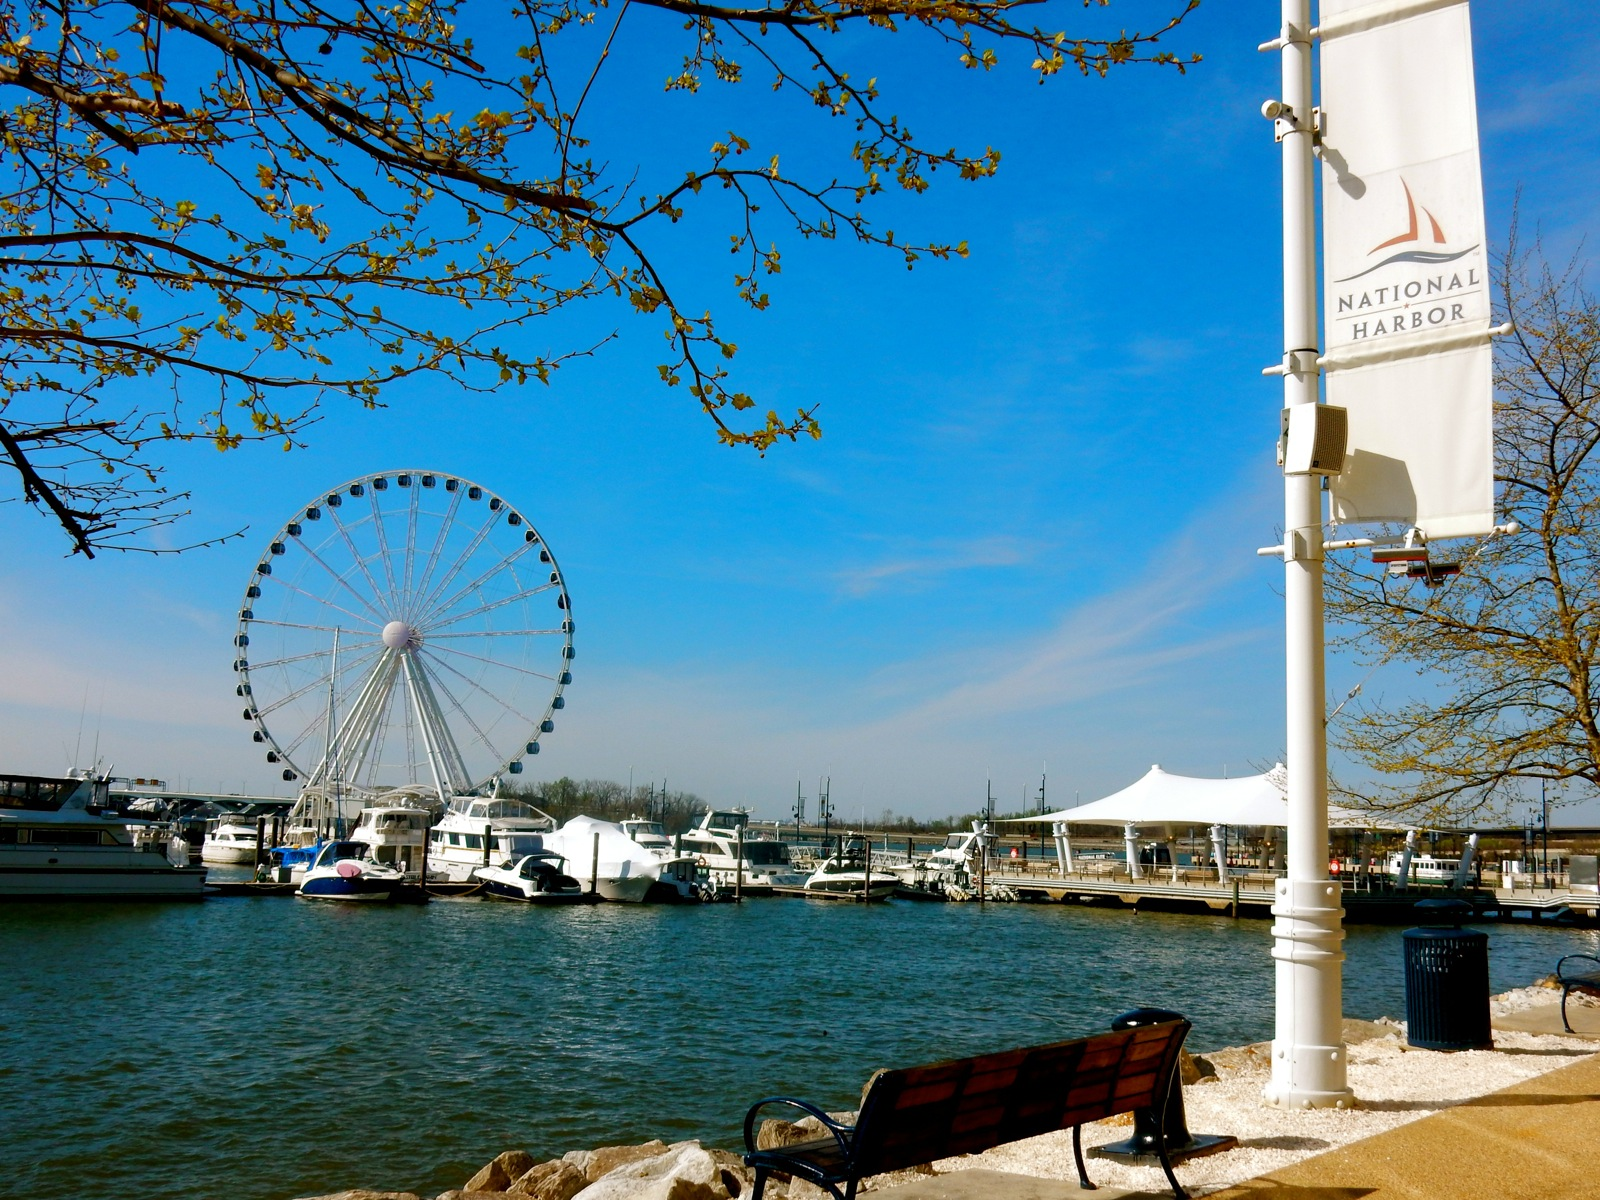 Hotels In The National Harbor Area